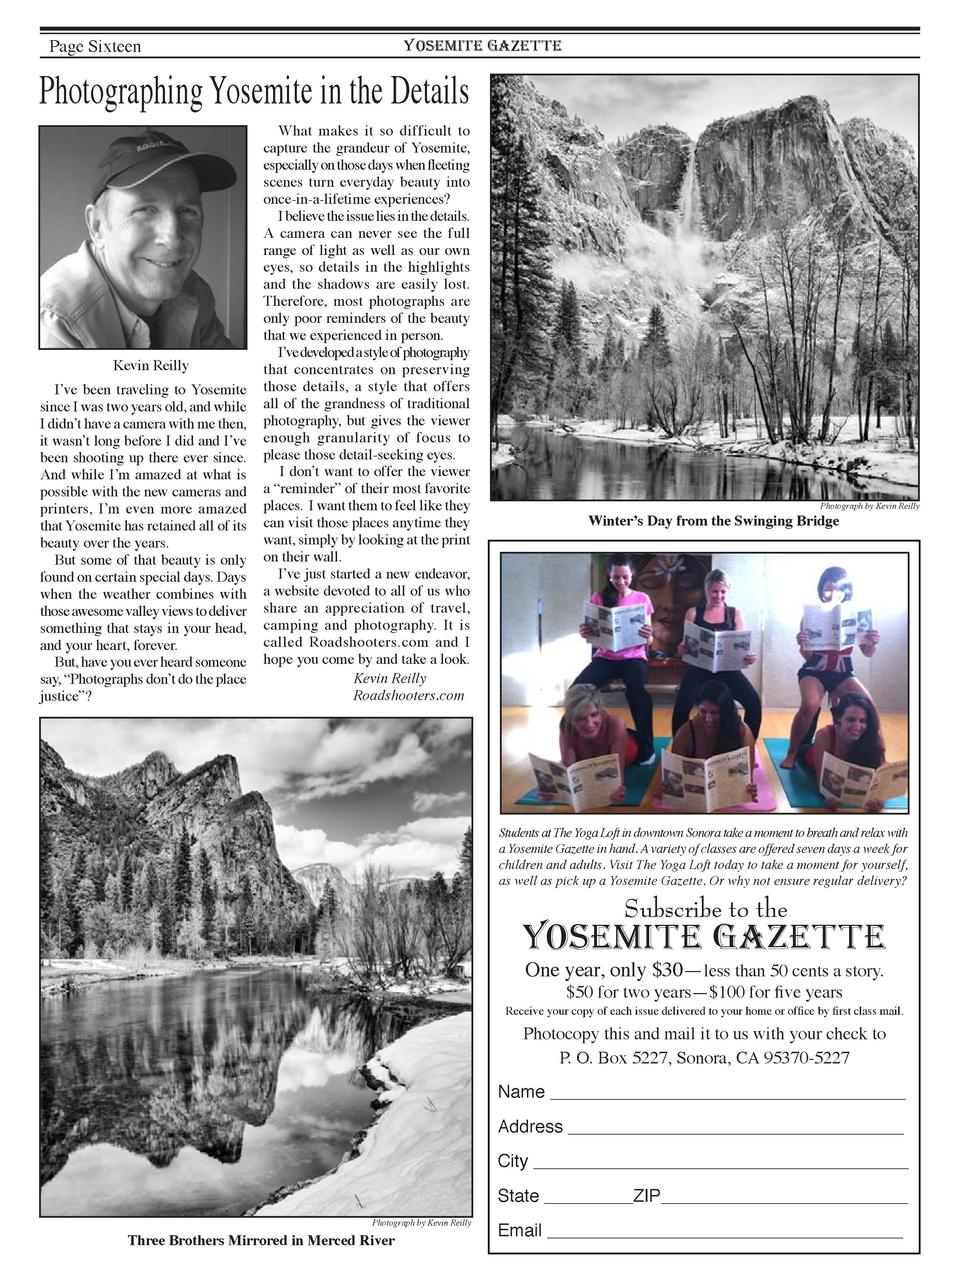 Page Sixteen  YOSEMITE GAZETTE  Photographing Yosemite in the Details  Kevin Reilly  I   ve been traveling to Yosemite sin...